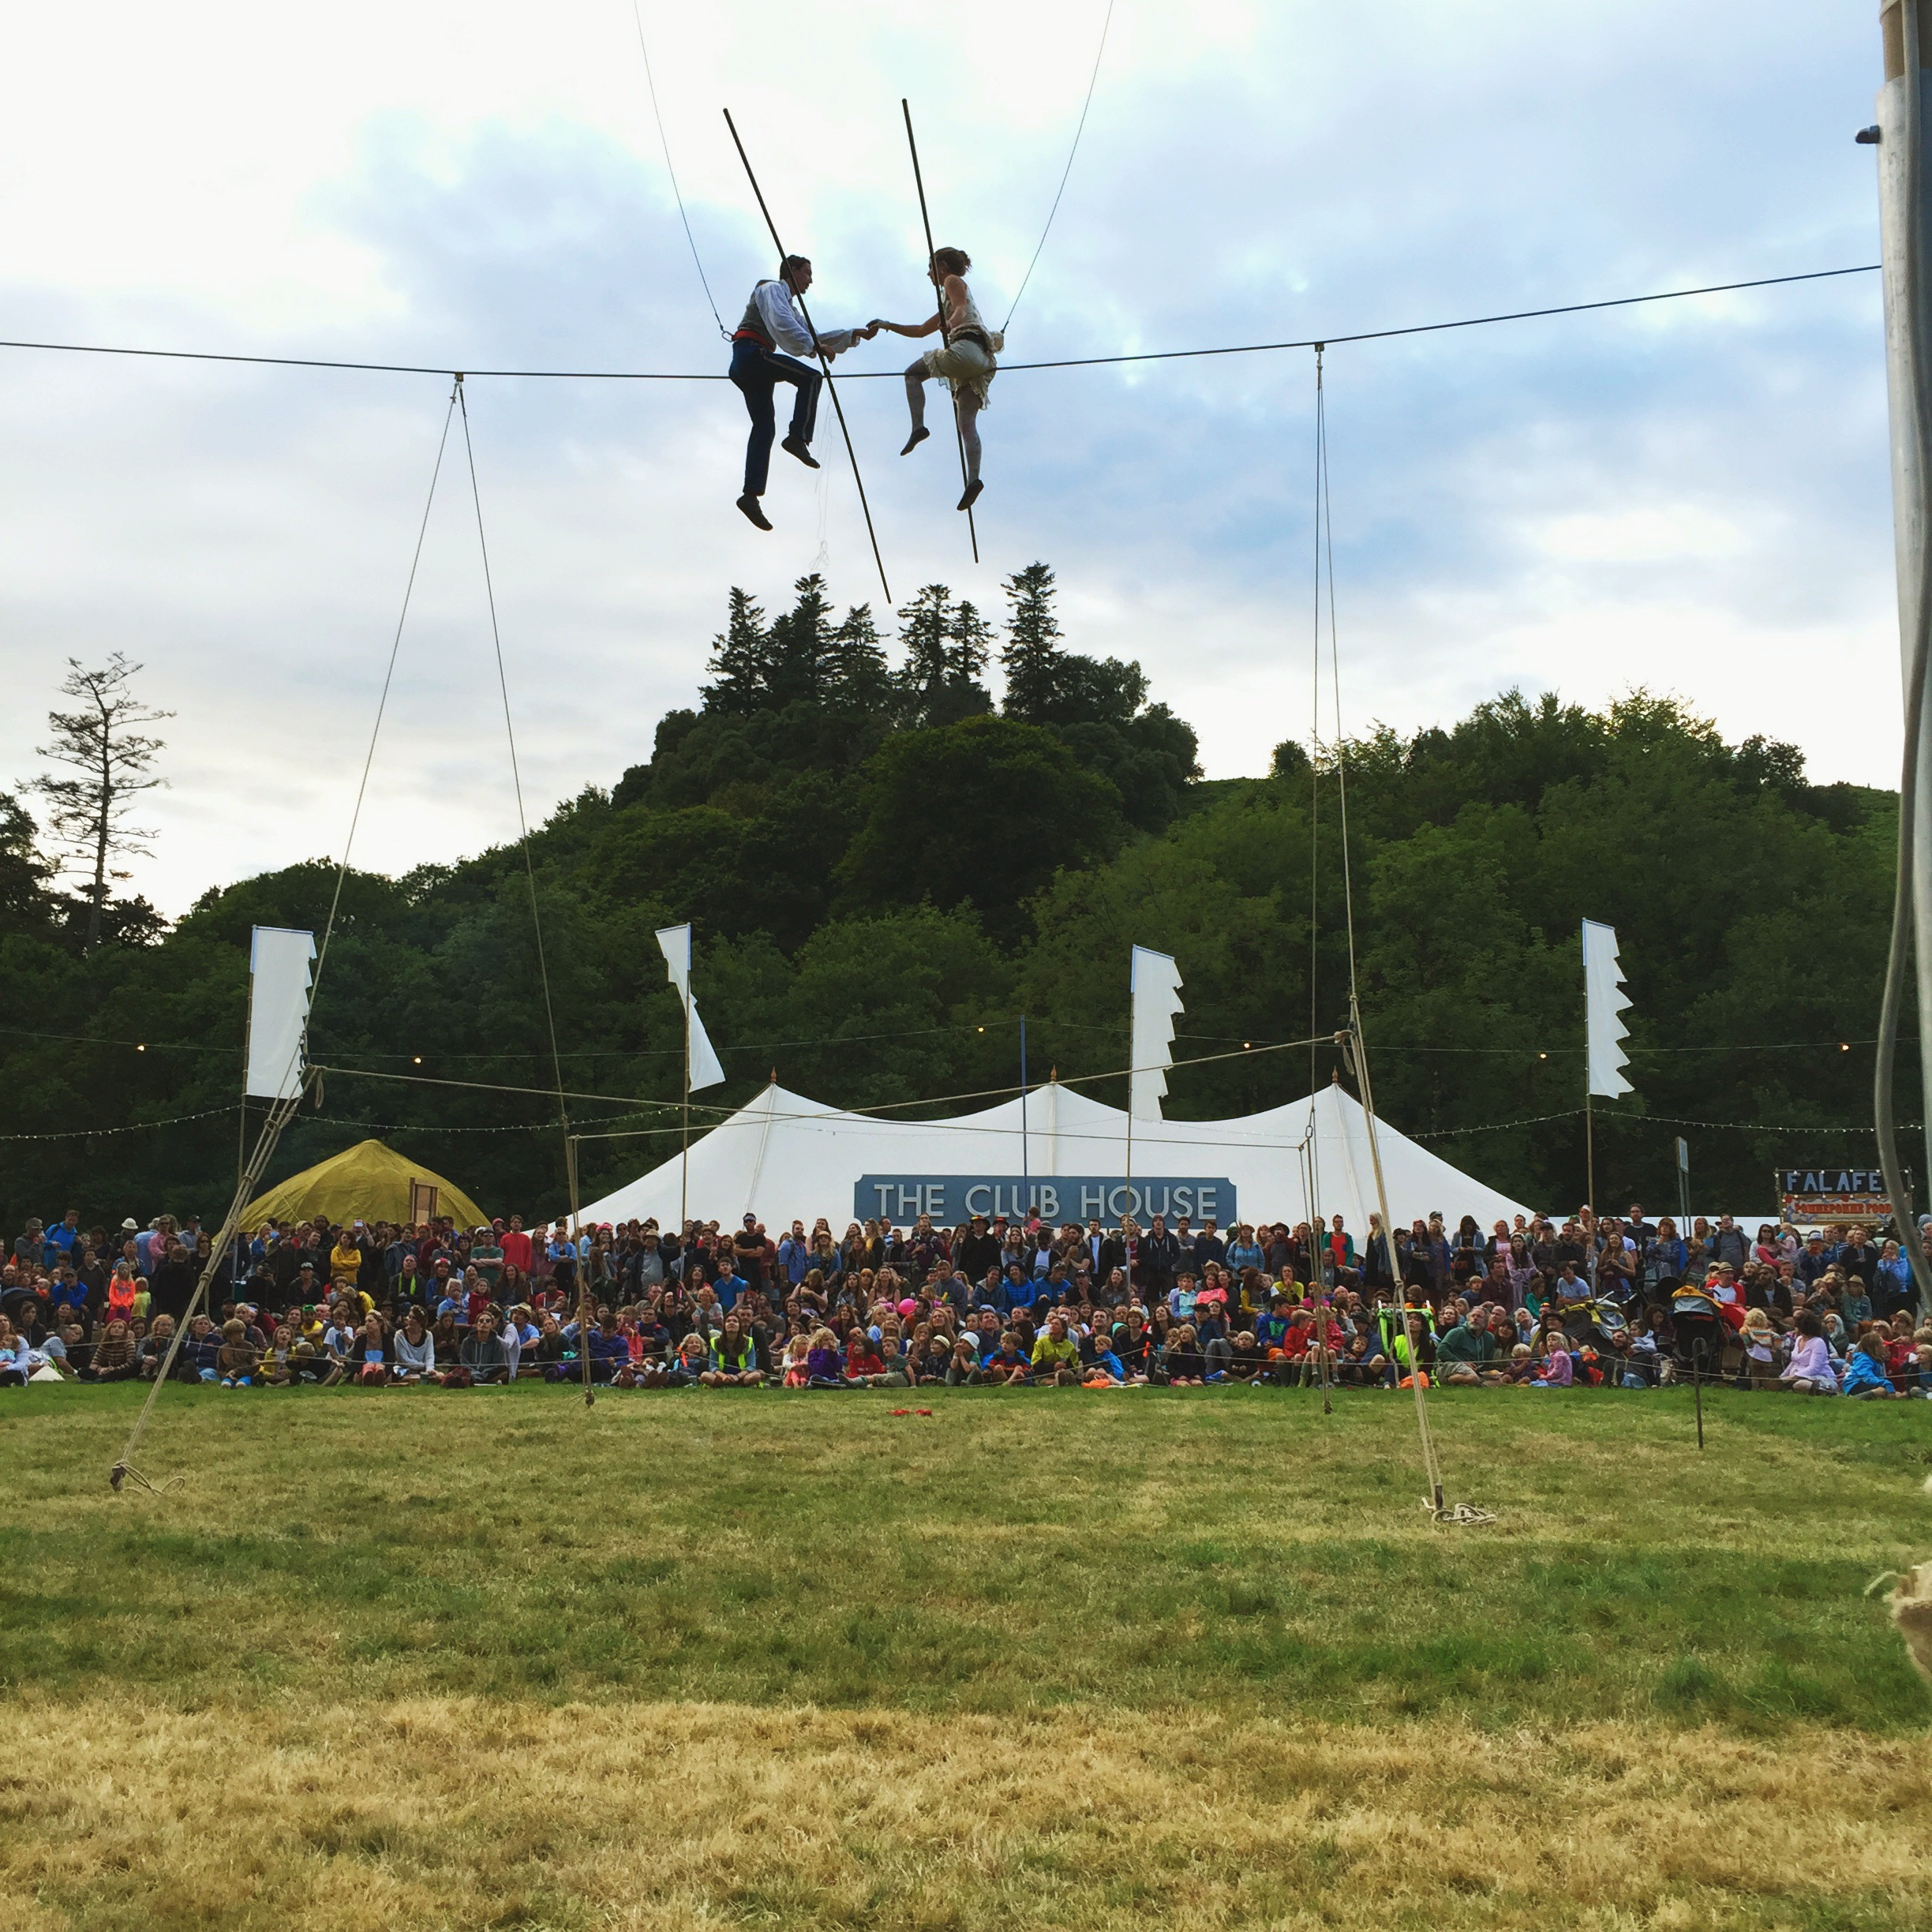 There were also a couple who did some fantastic performances ona tight rope